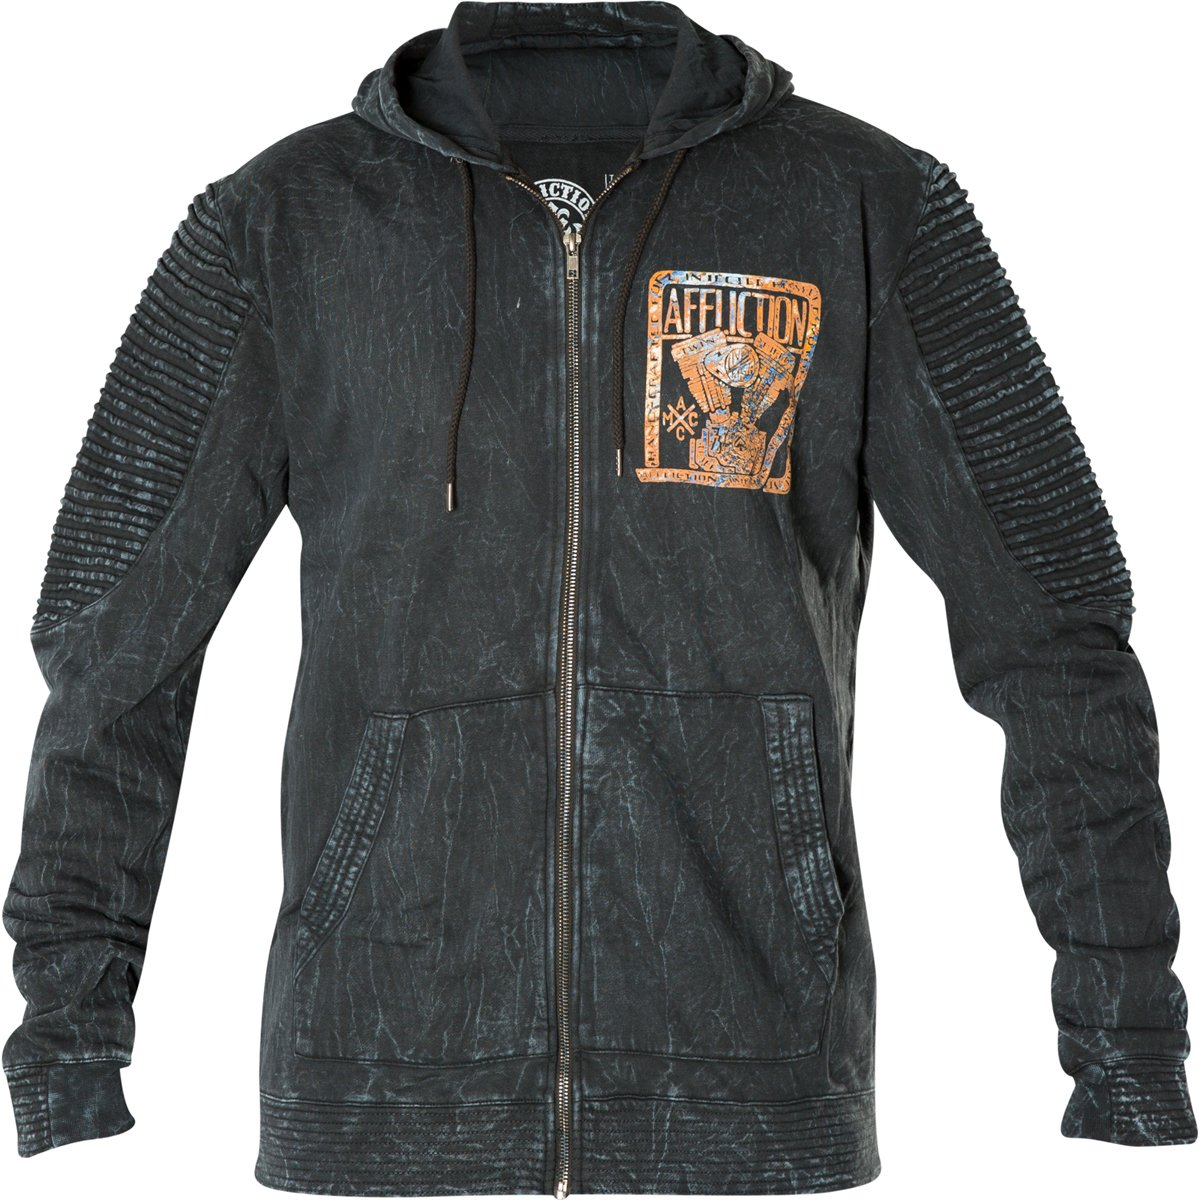 Affliction Hoody Motor Head Schwarz